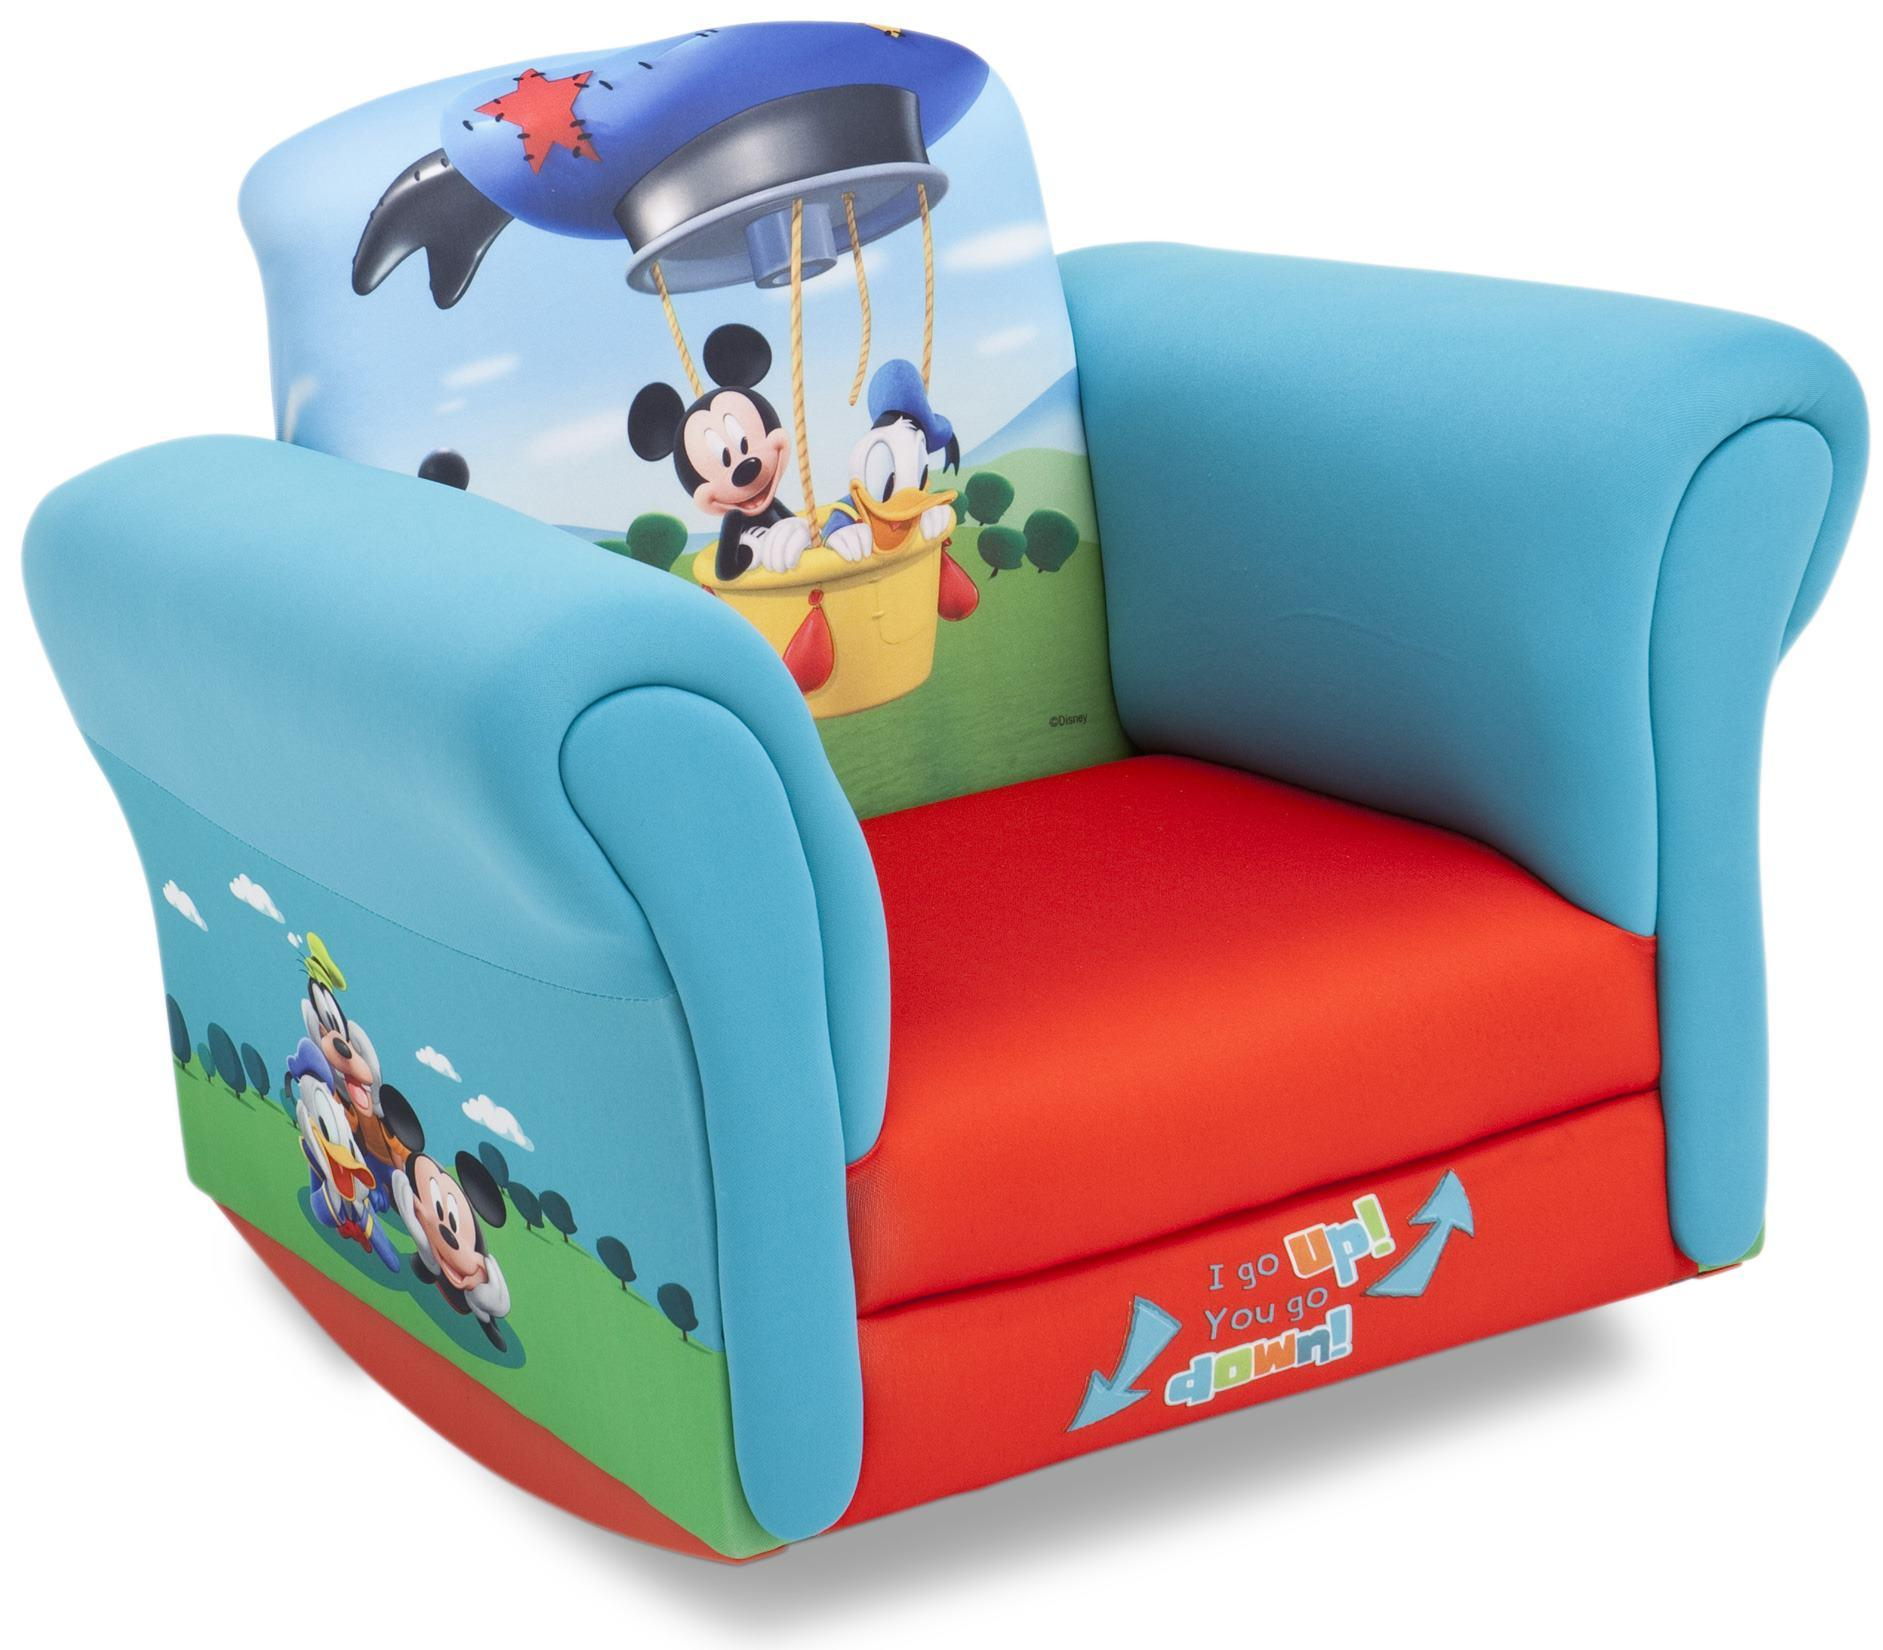 Toddler Soft Chairs Disney Upholstered Child 39s Mickey Mouse Rocking Chair